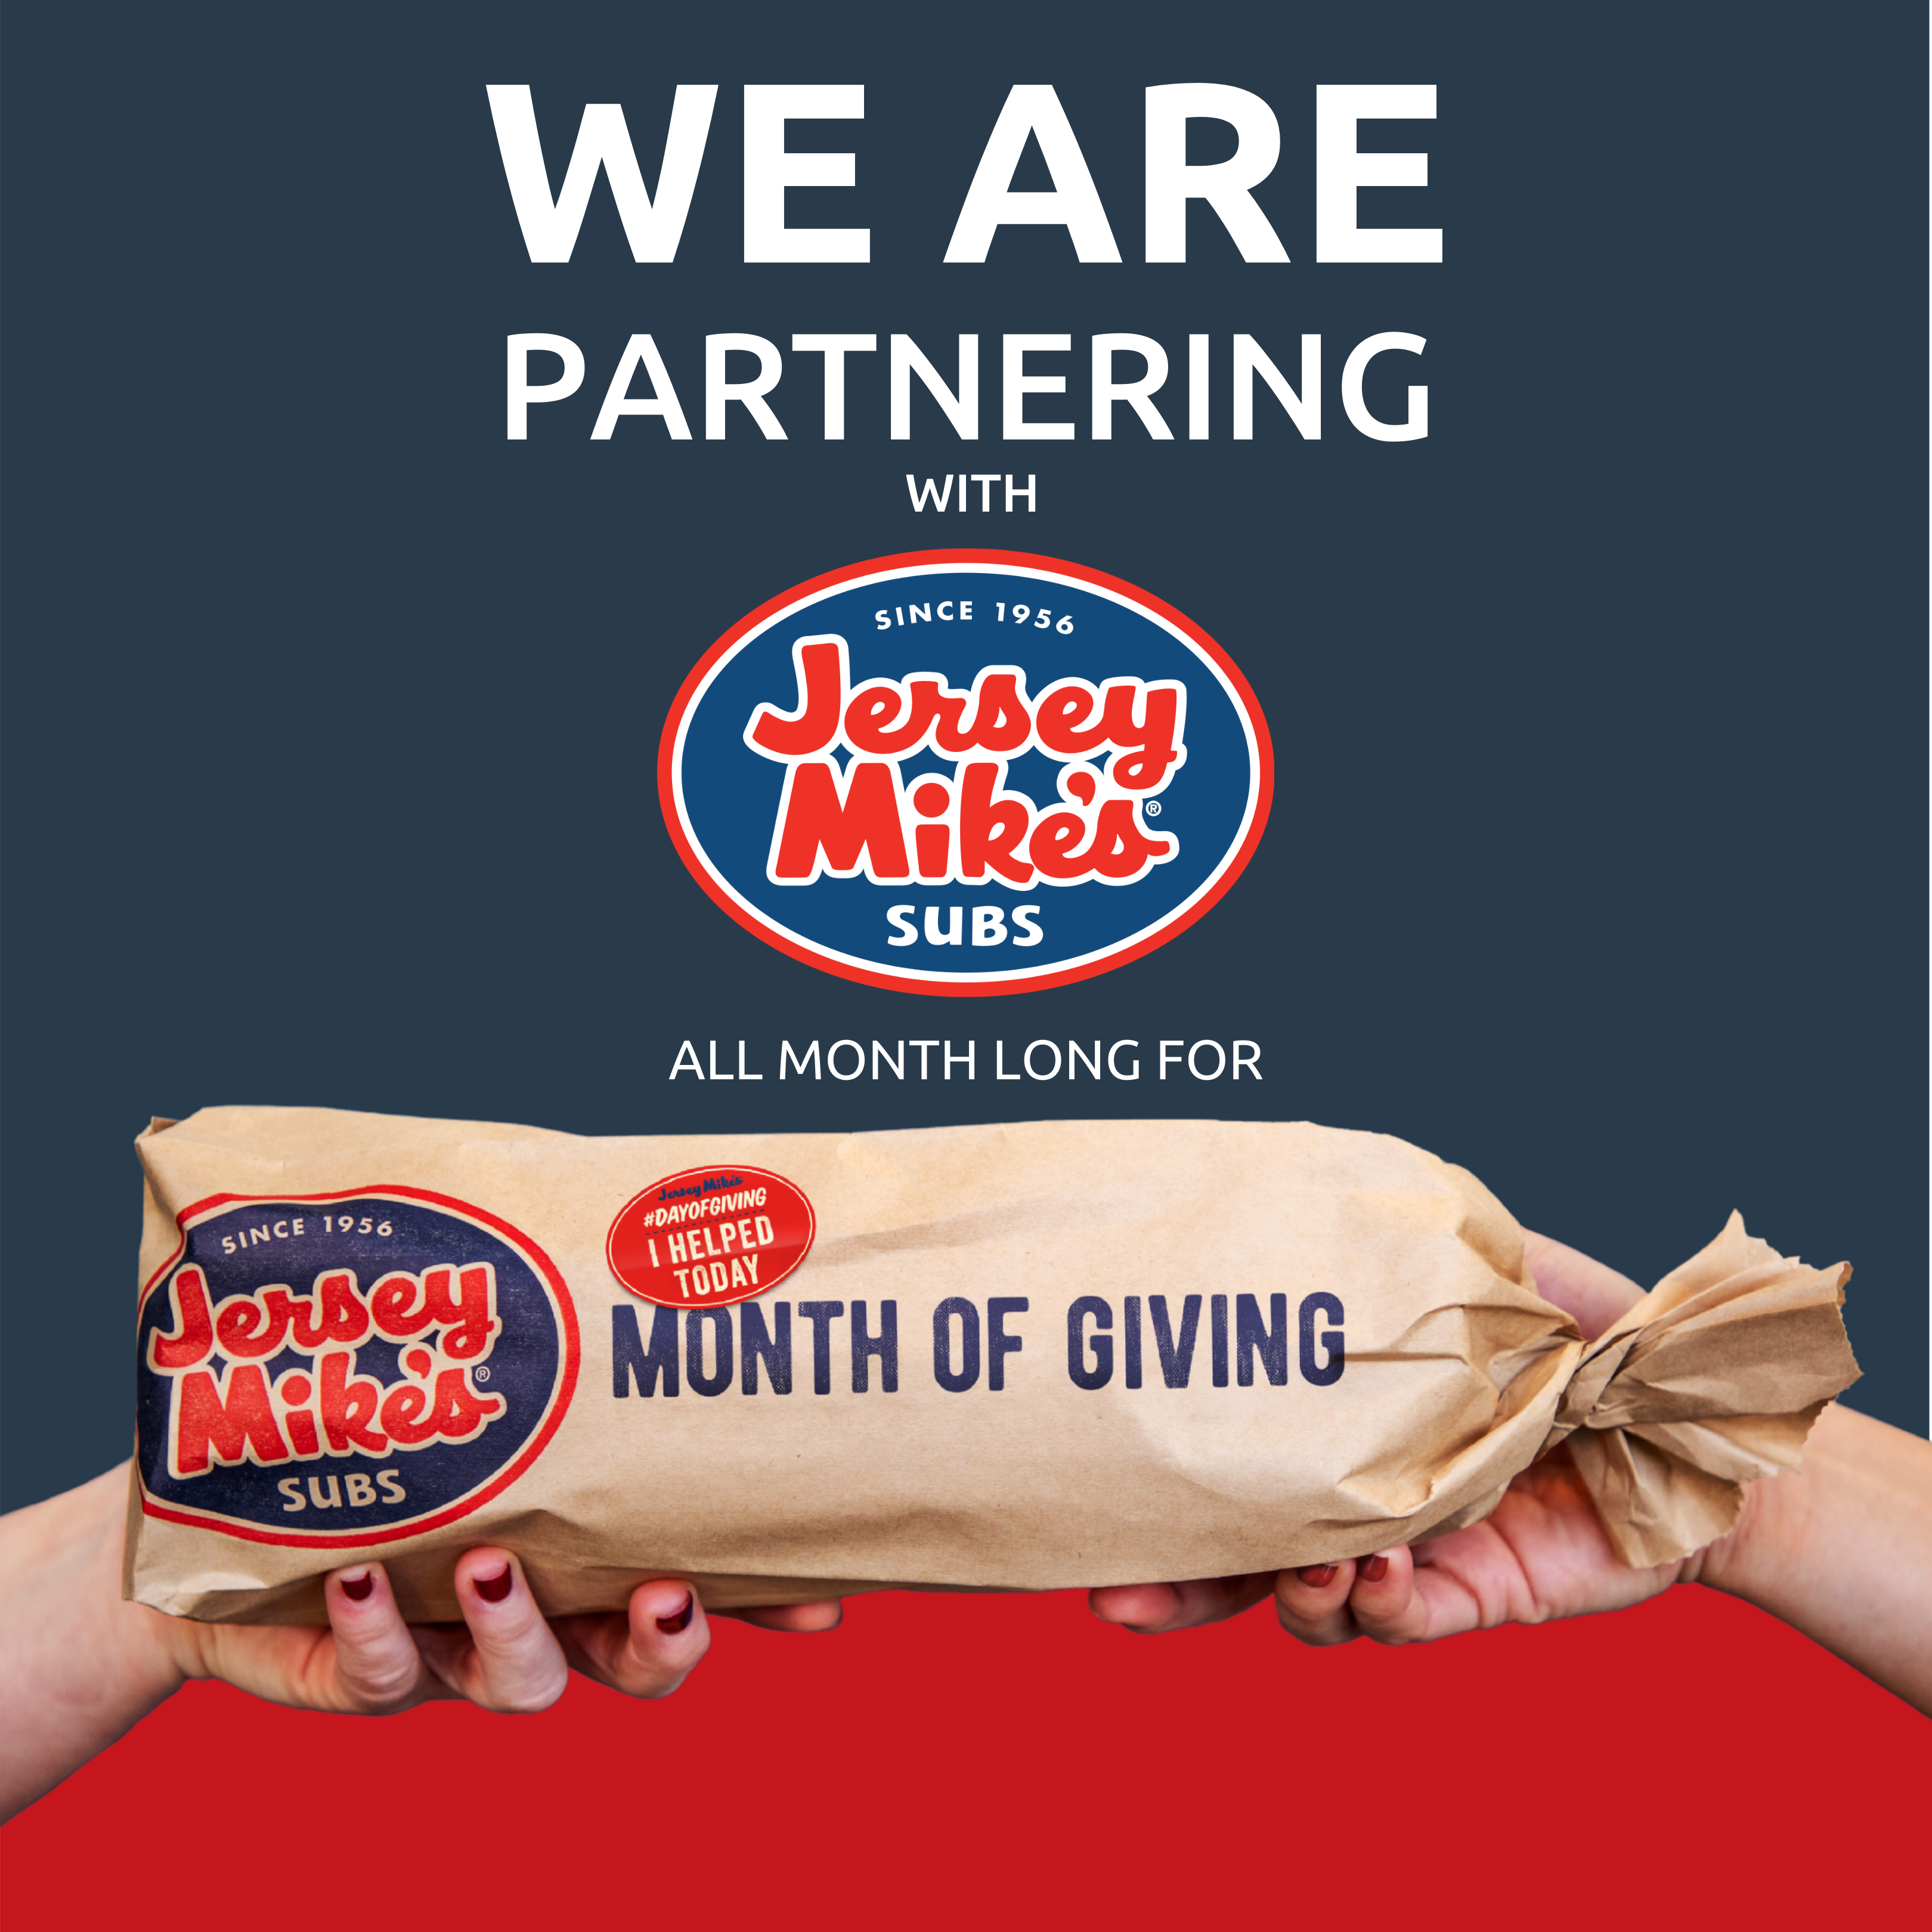 """""""We are partnering with Jersey Mike's Subs all month long for month of giving"""" with two hands holding a bagged sandwich"""